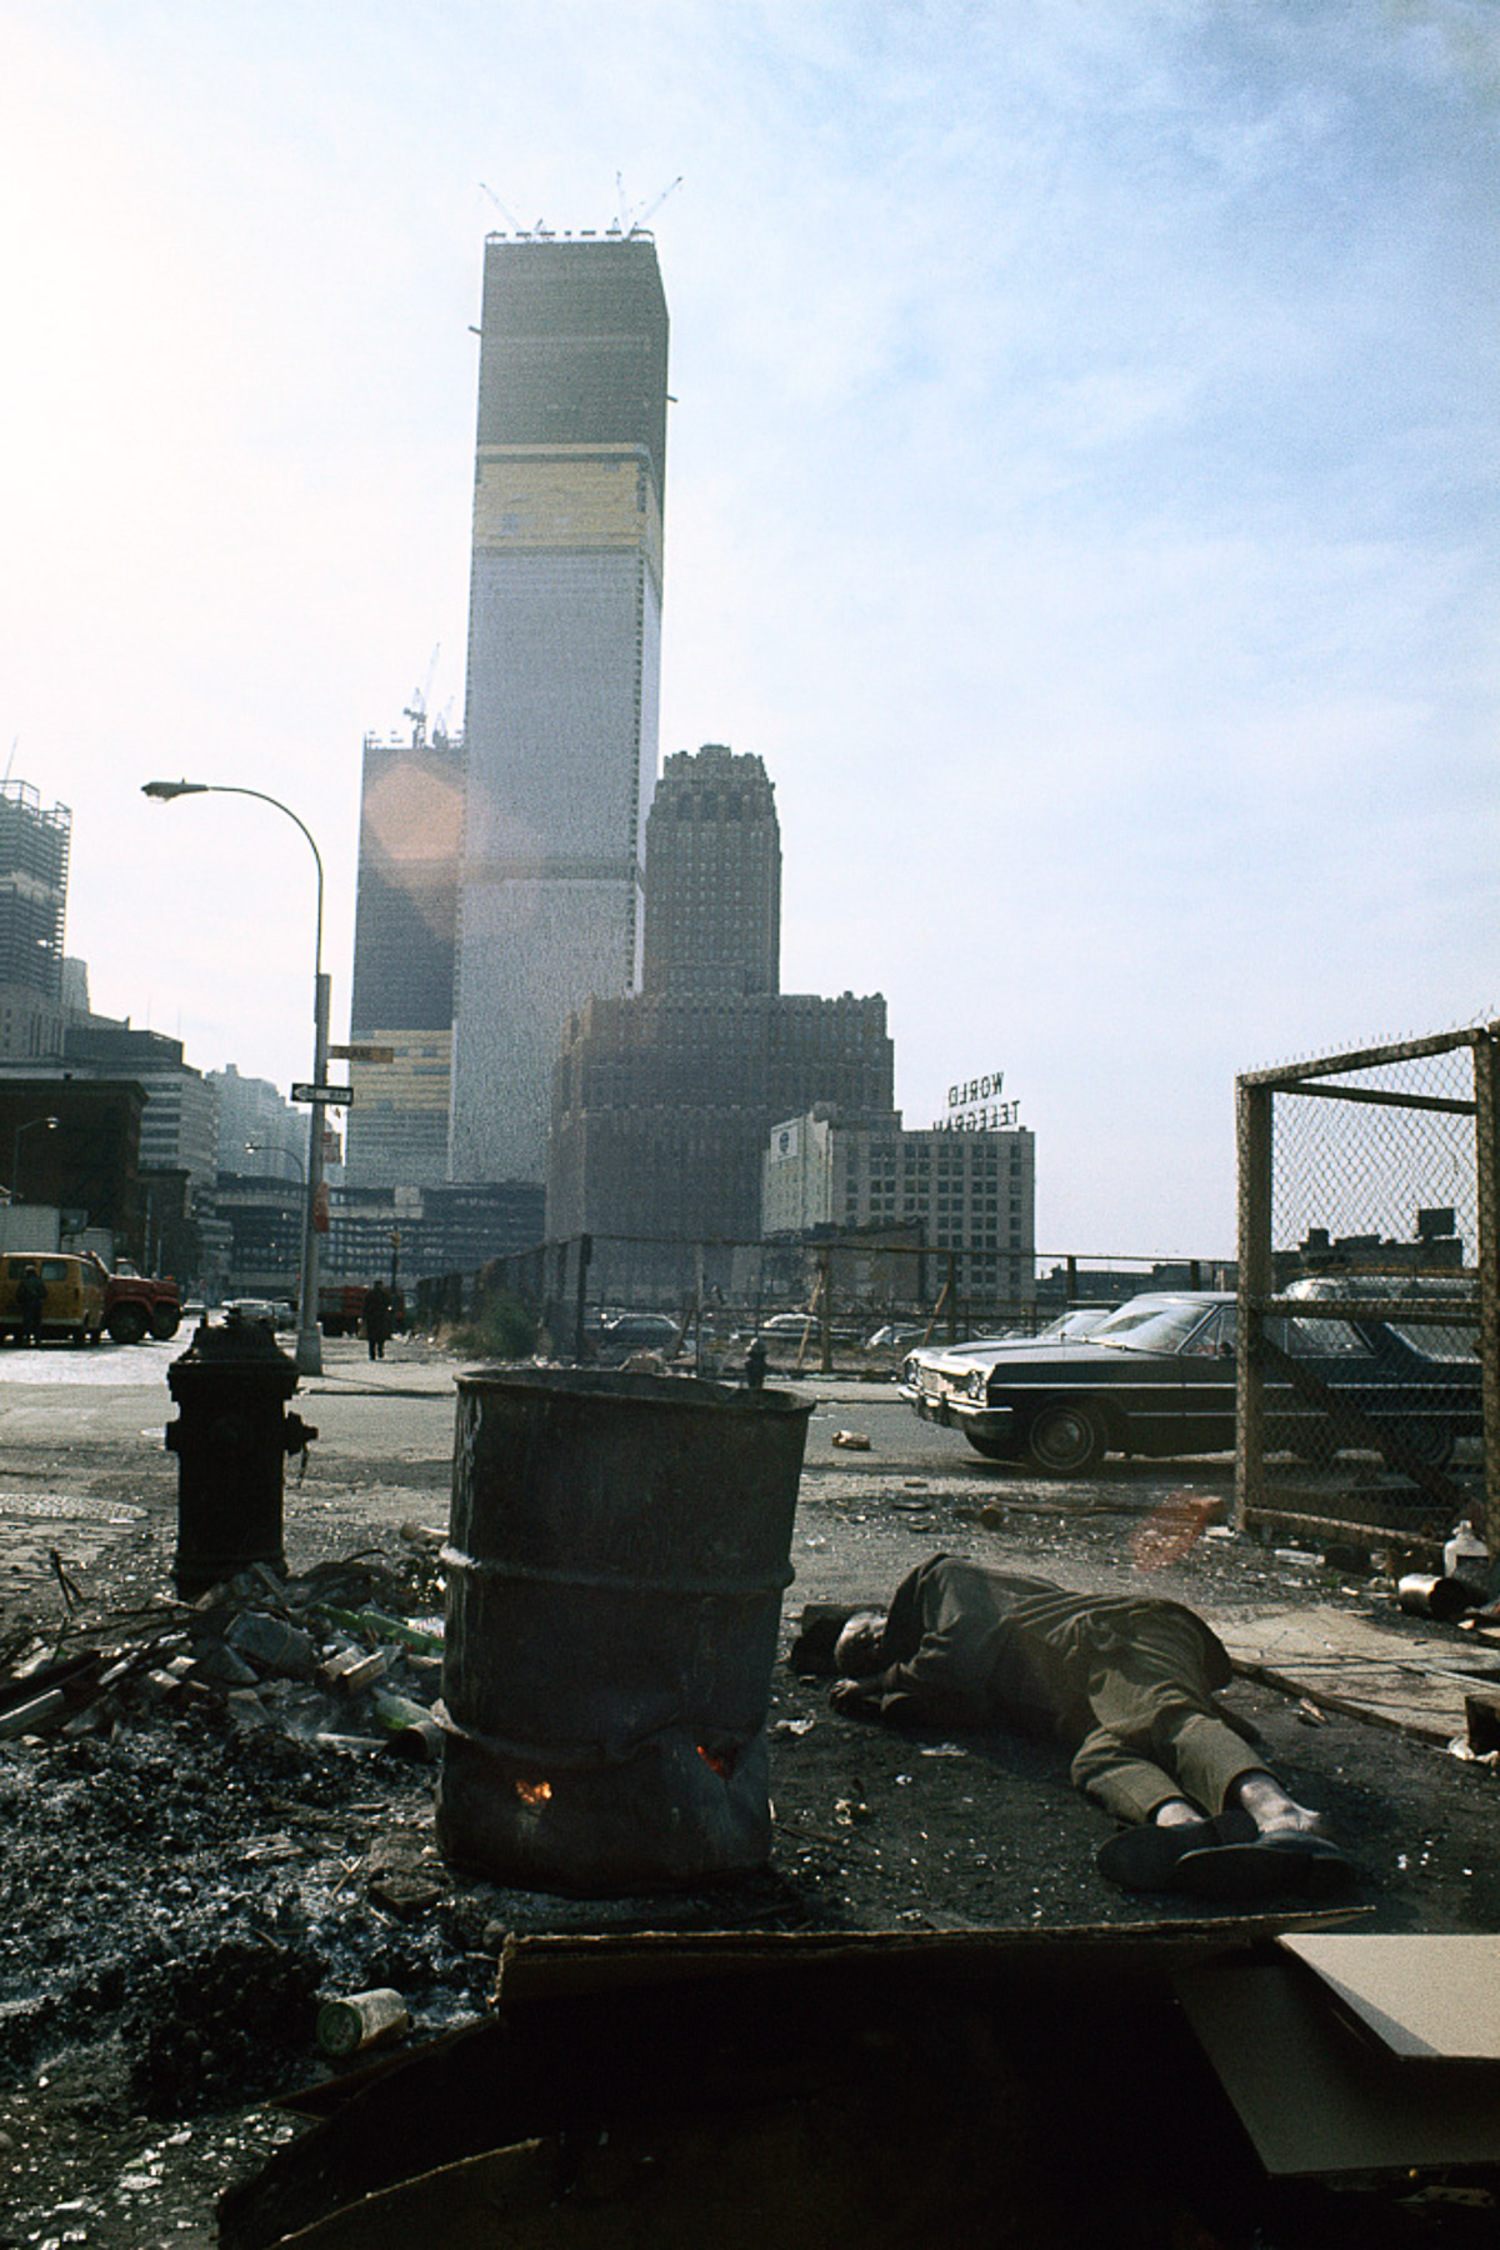 1970 View of the World Trade Center under construction from Duane Street.